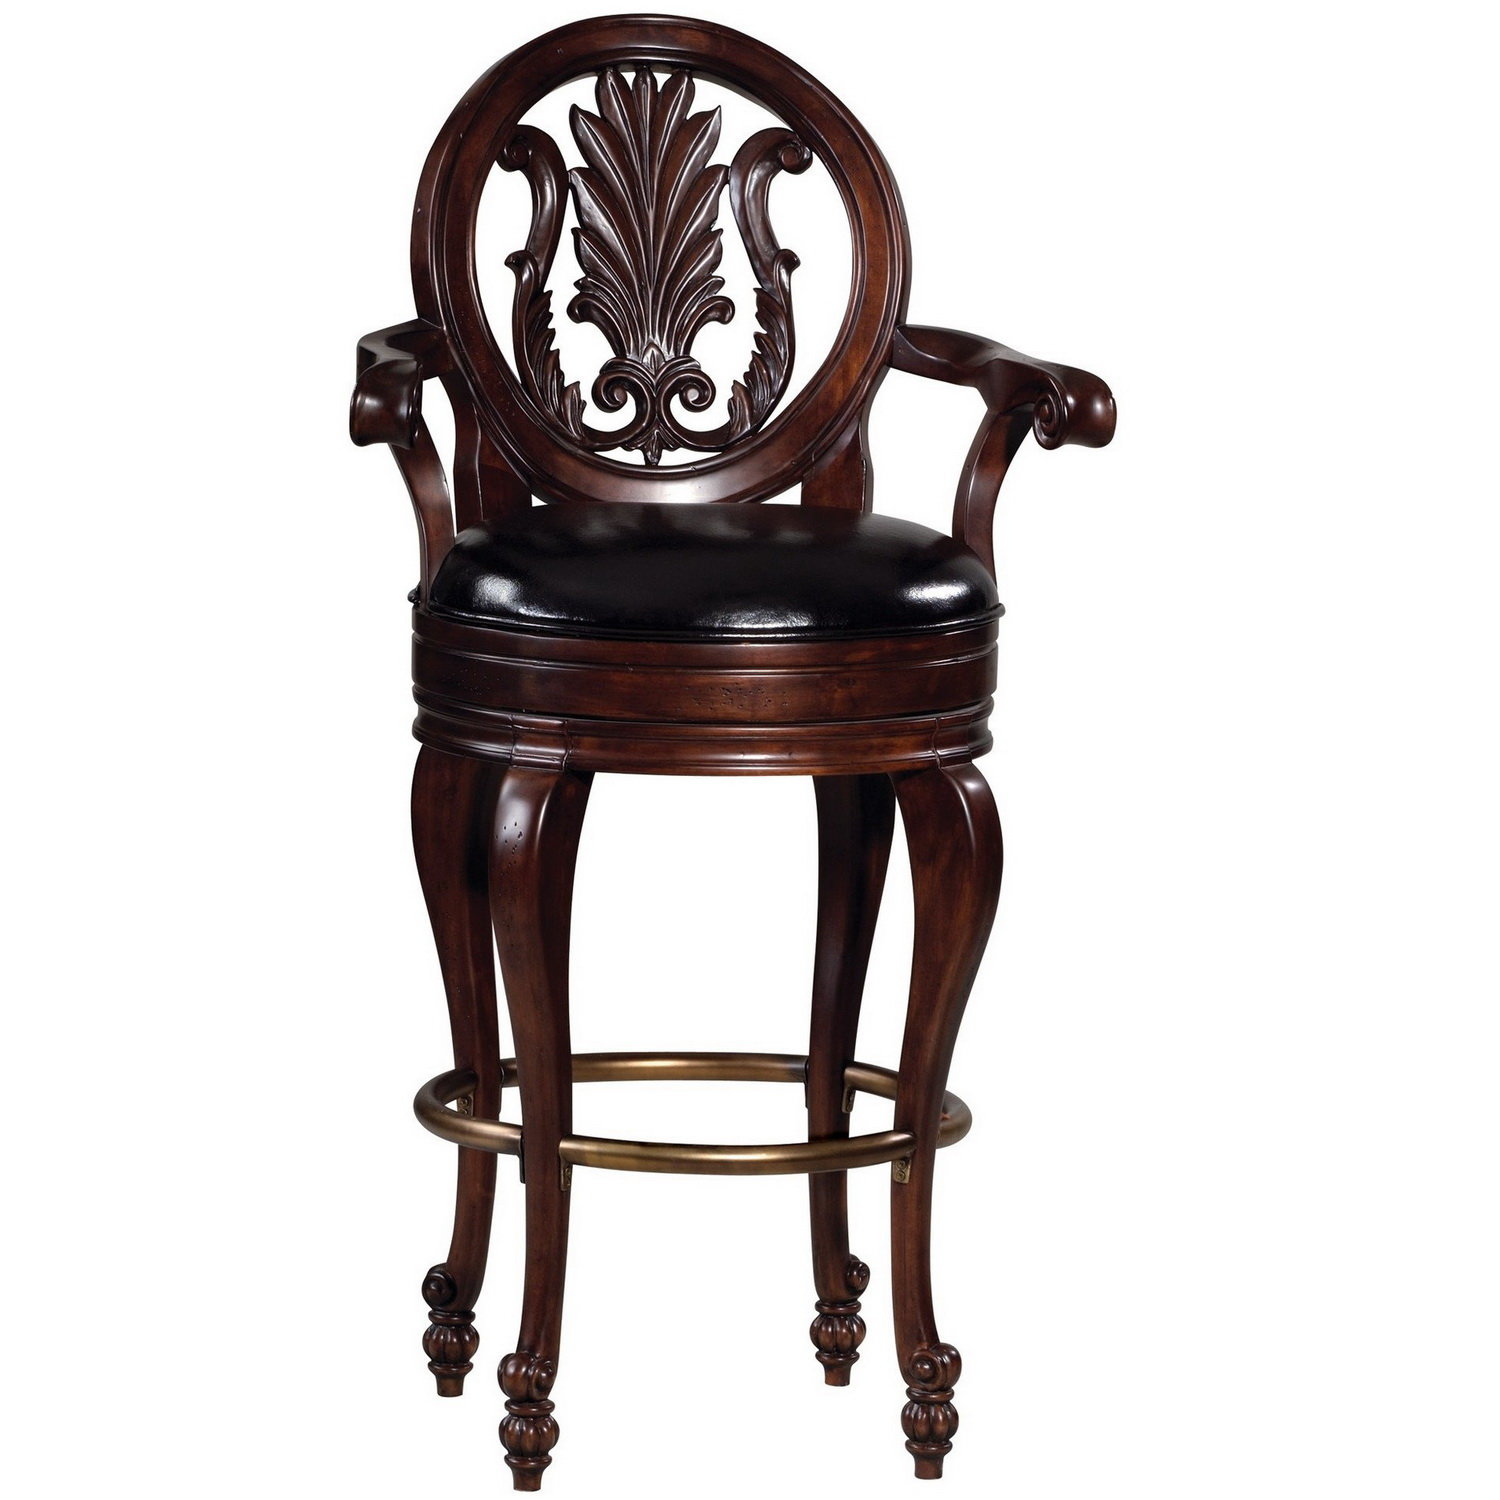 Барный стул Howard Miller Niagara Bar Stool (арт. 697-001)